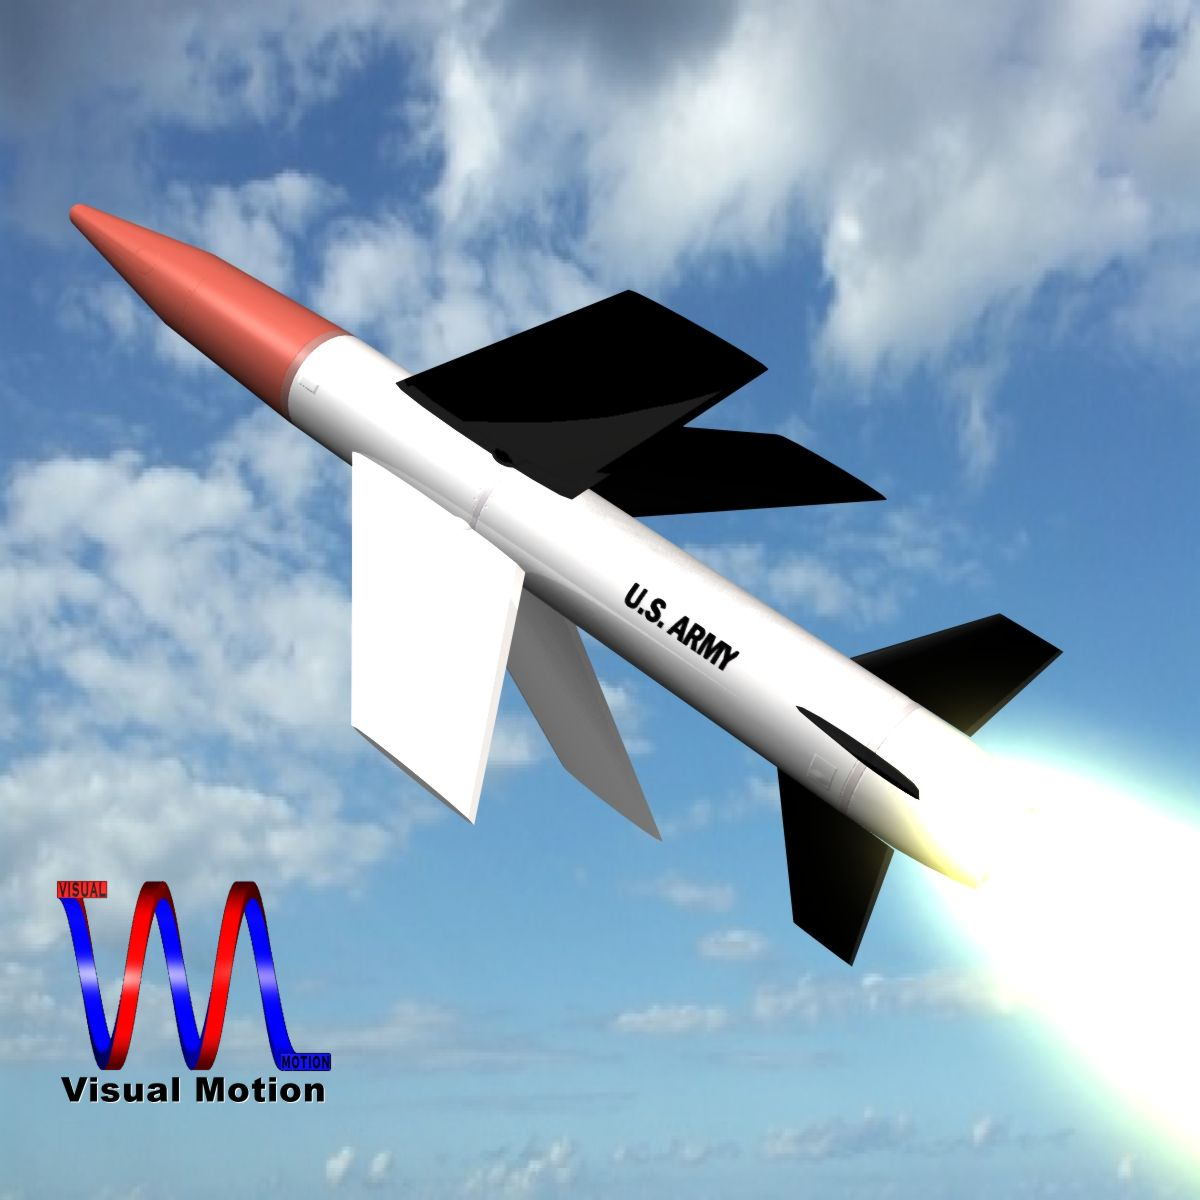 us mgm-18a lacrosse missile 3d model 3ds dxf cob x other obj 136516